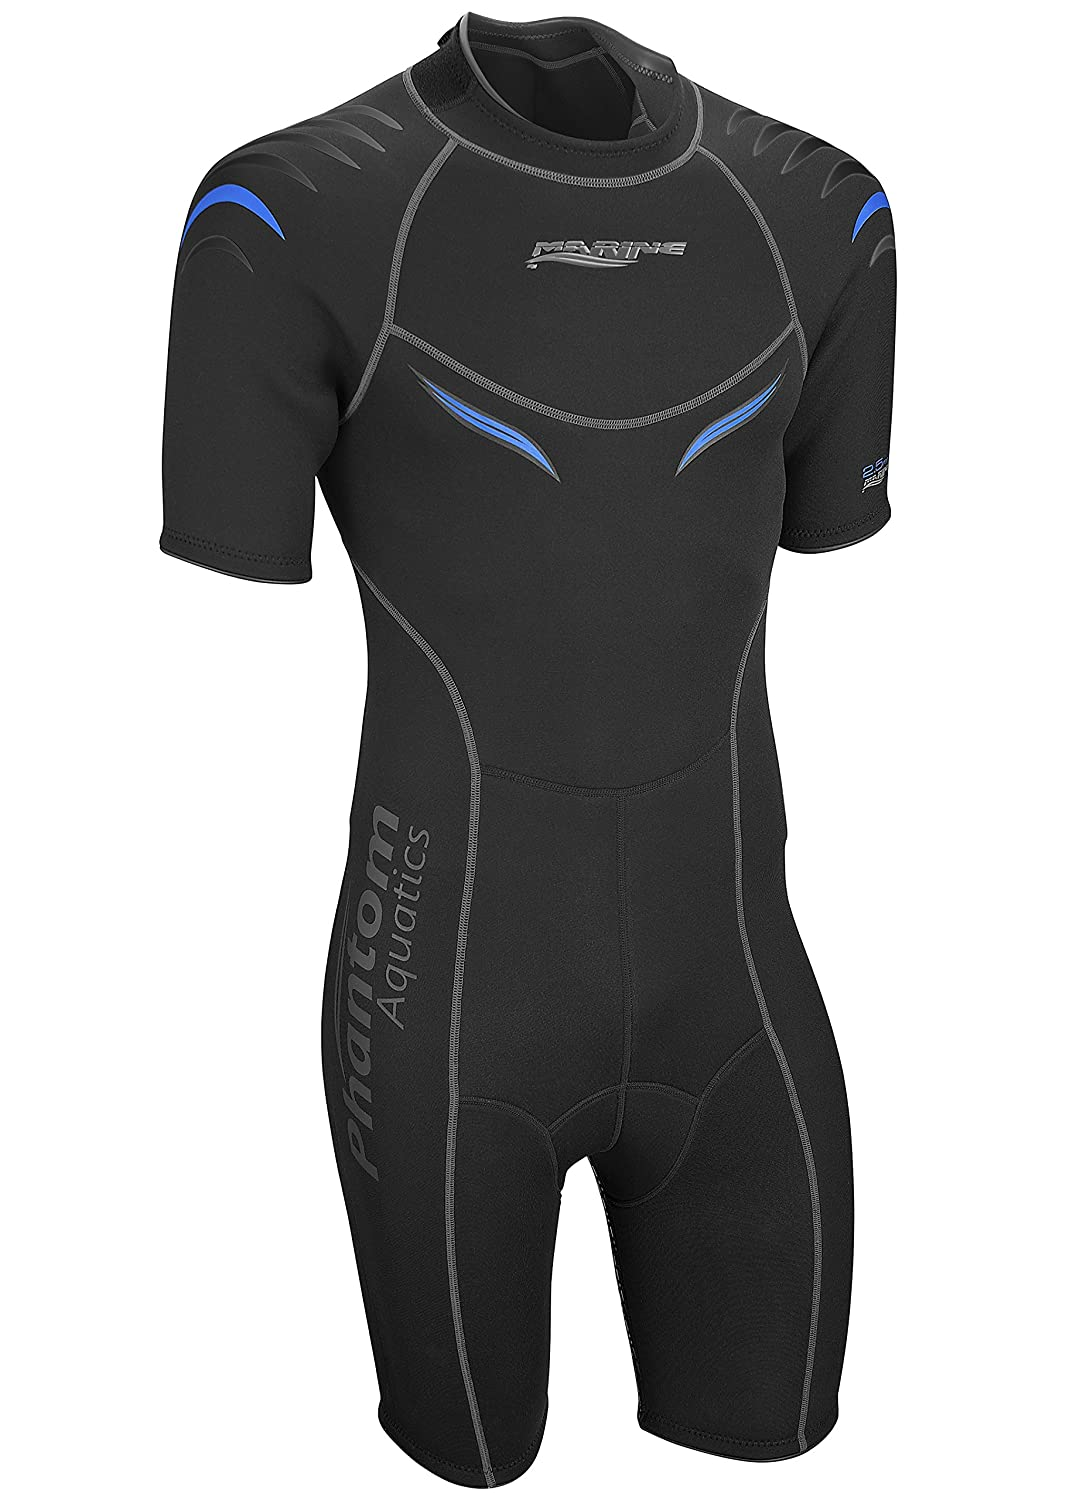 Top 10 Best Wet Suits